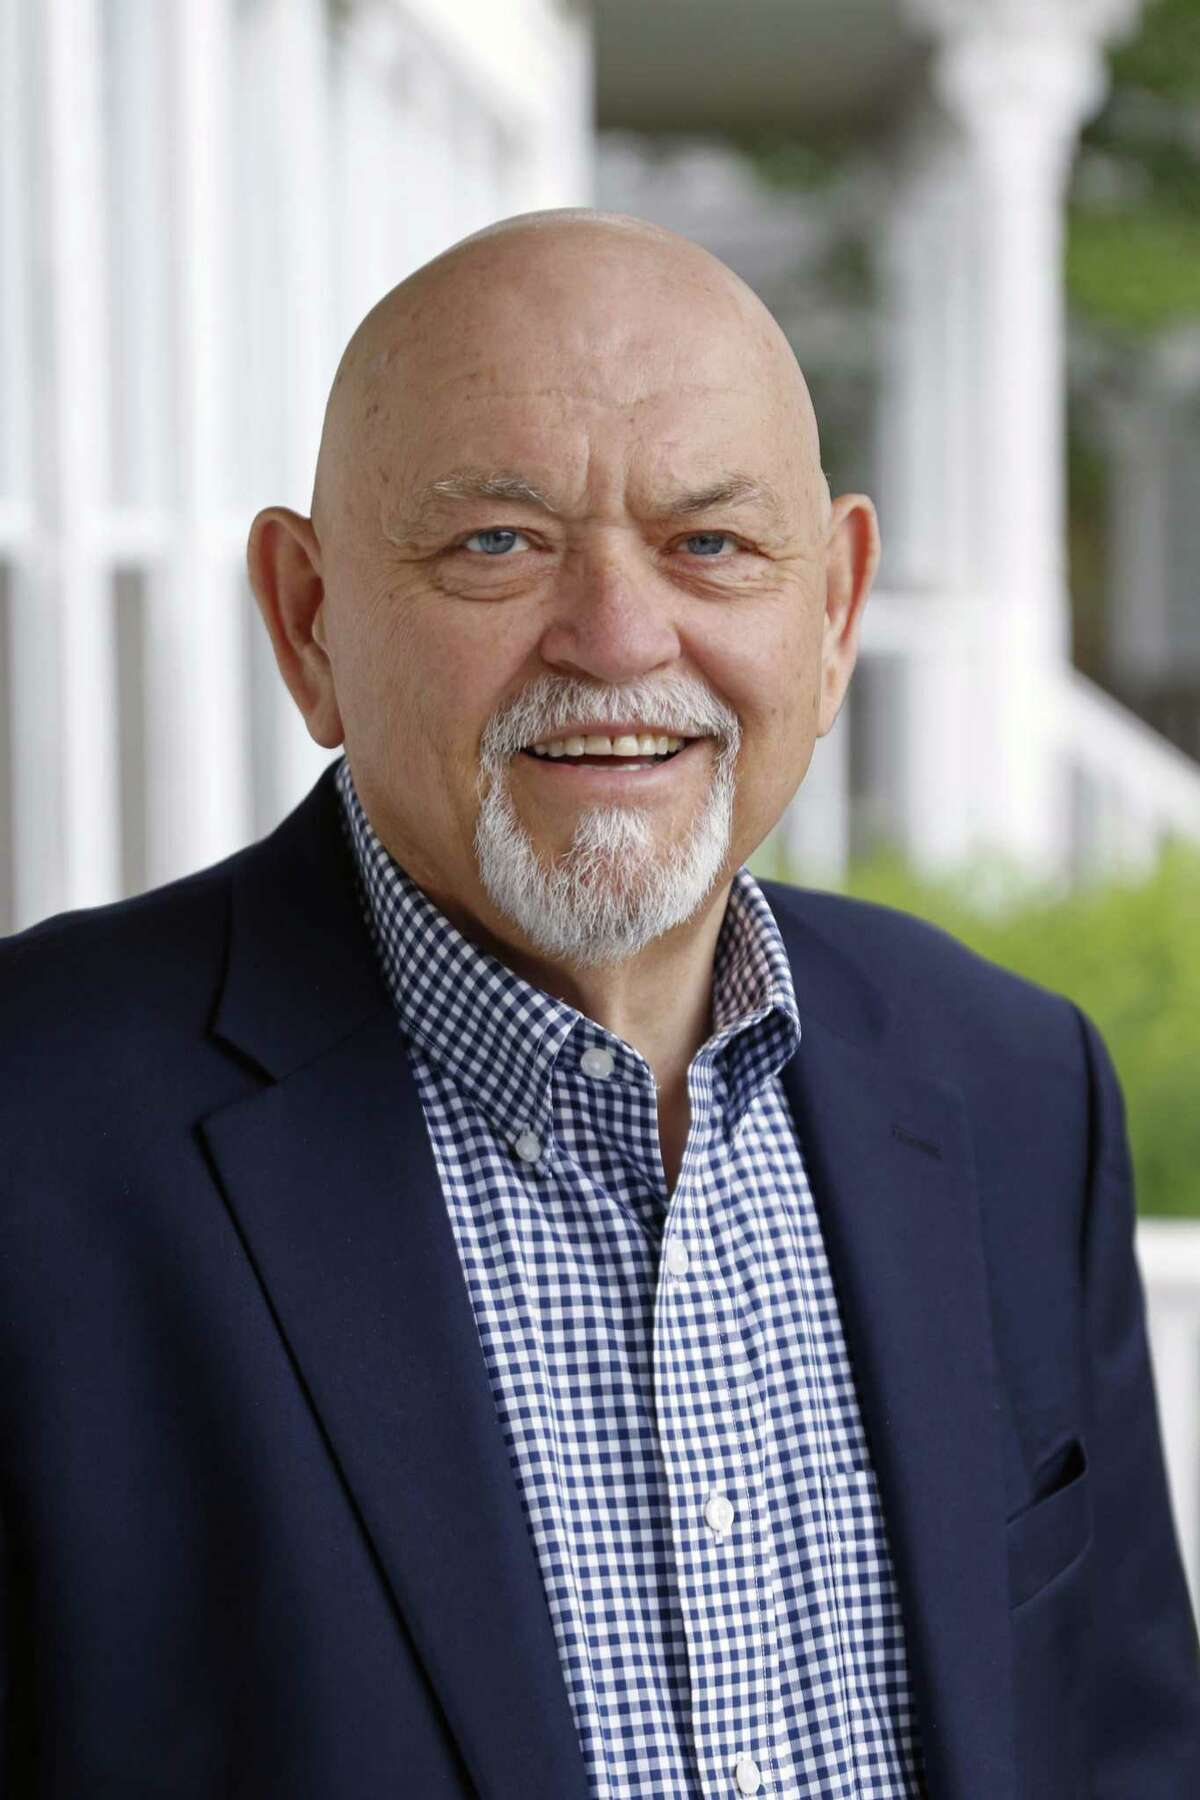 Bridgeport Rescue Mission Executive Director Terry Wilcox is set to retire on Oct. 31, 2019, after 18 years with the nonprofit.